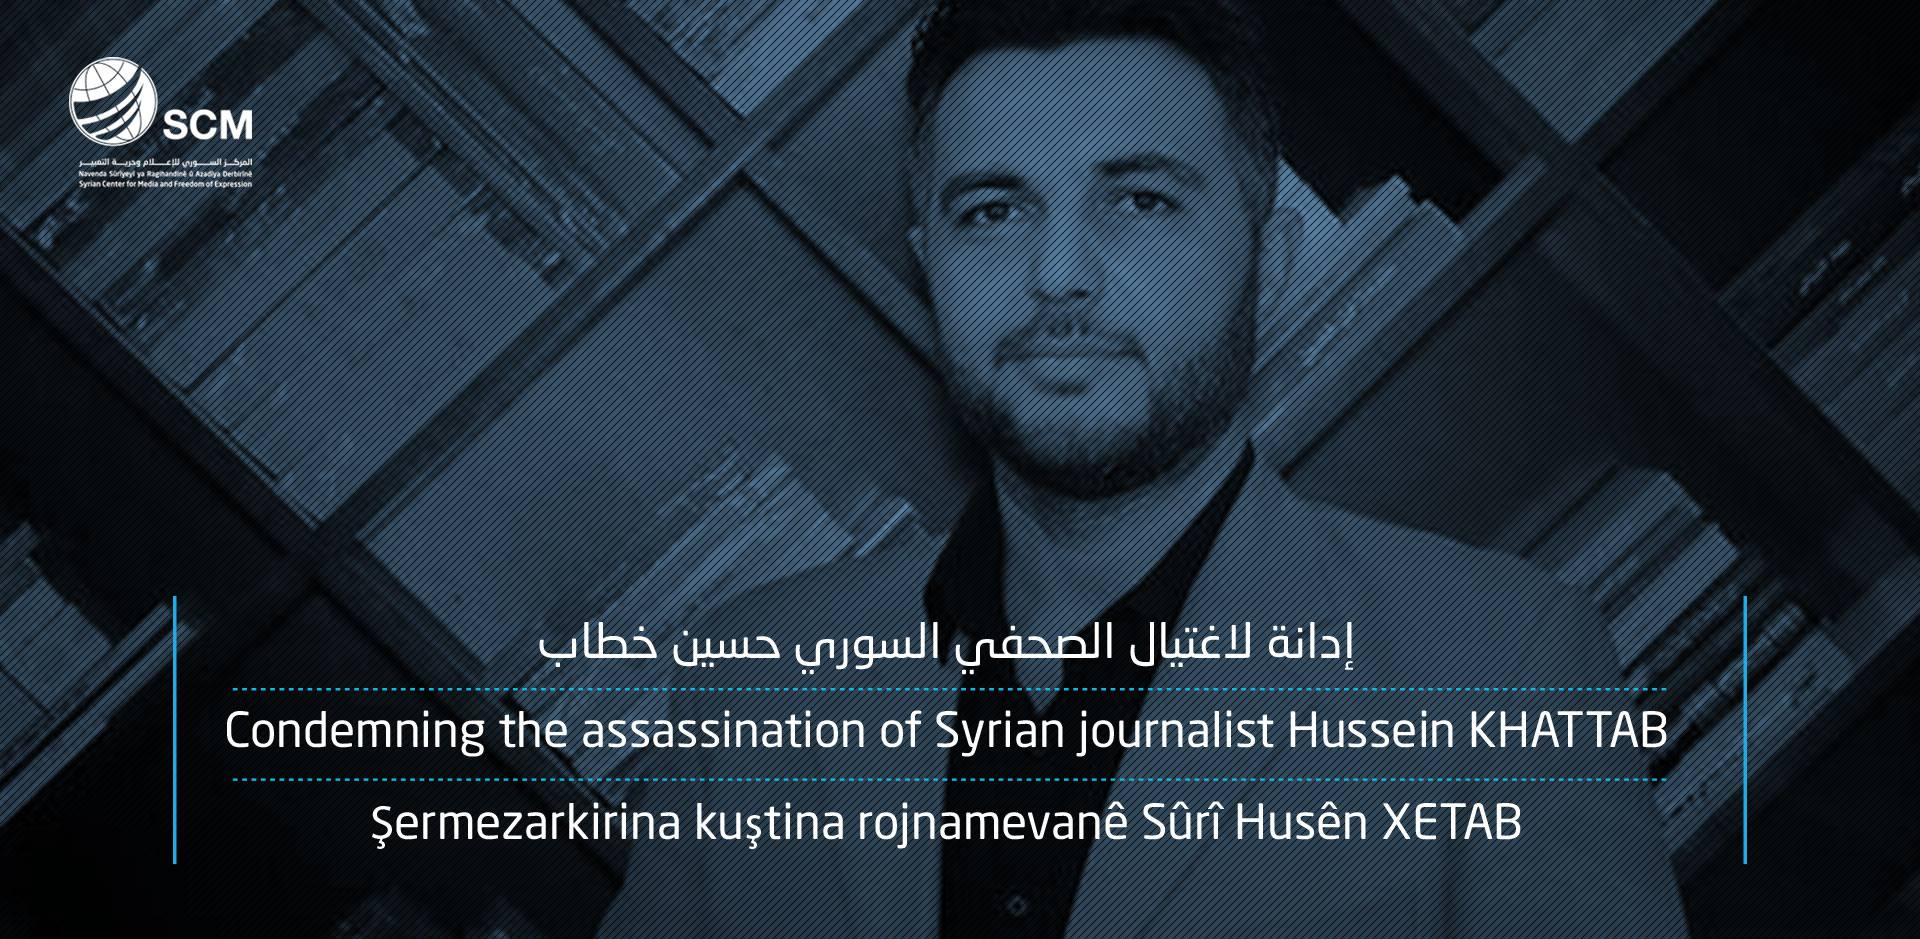 Press Release: condemns the assassination of the journalist Hussein Khattab